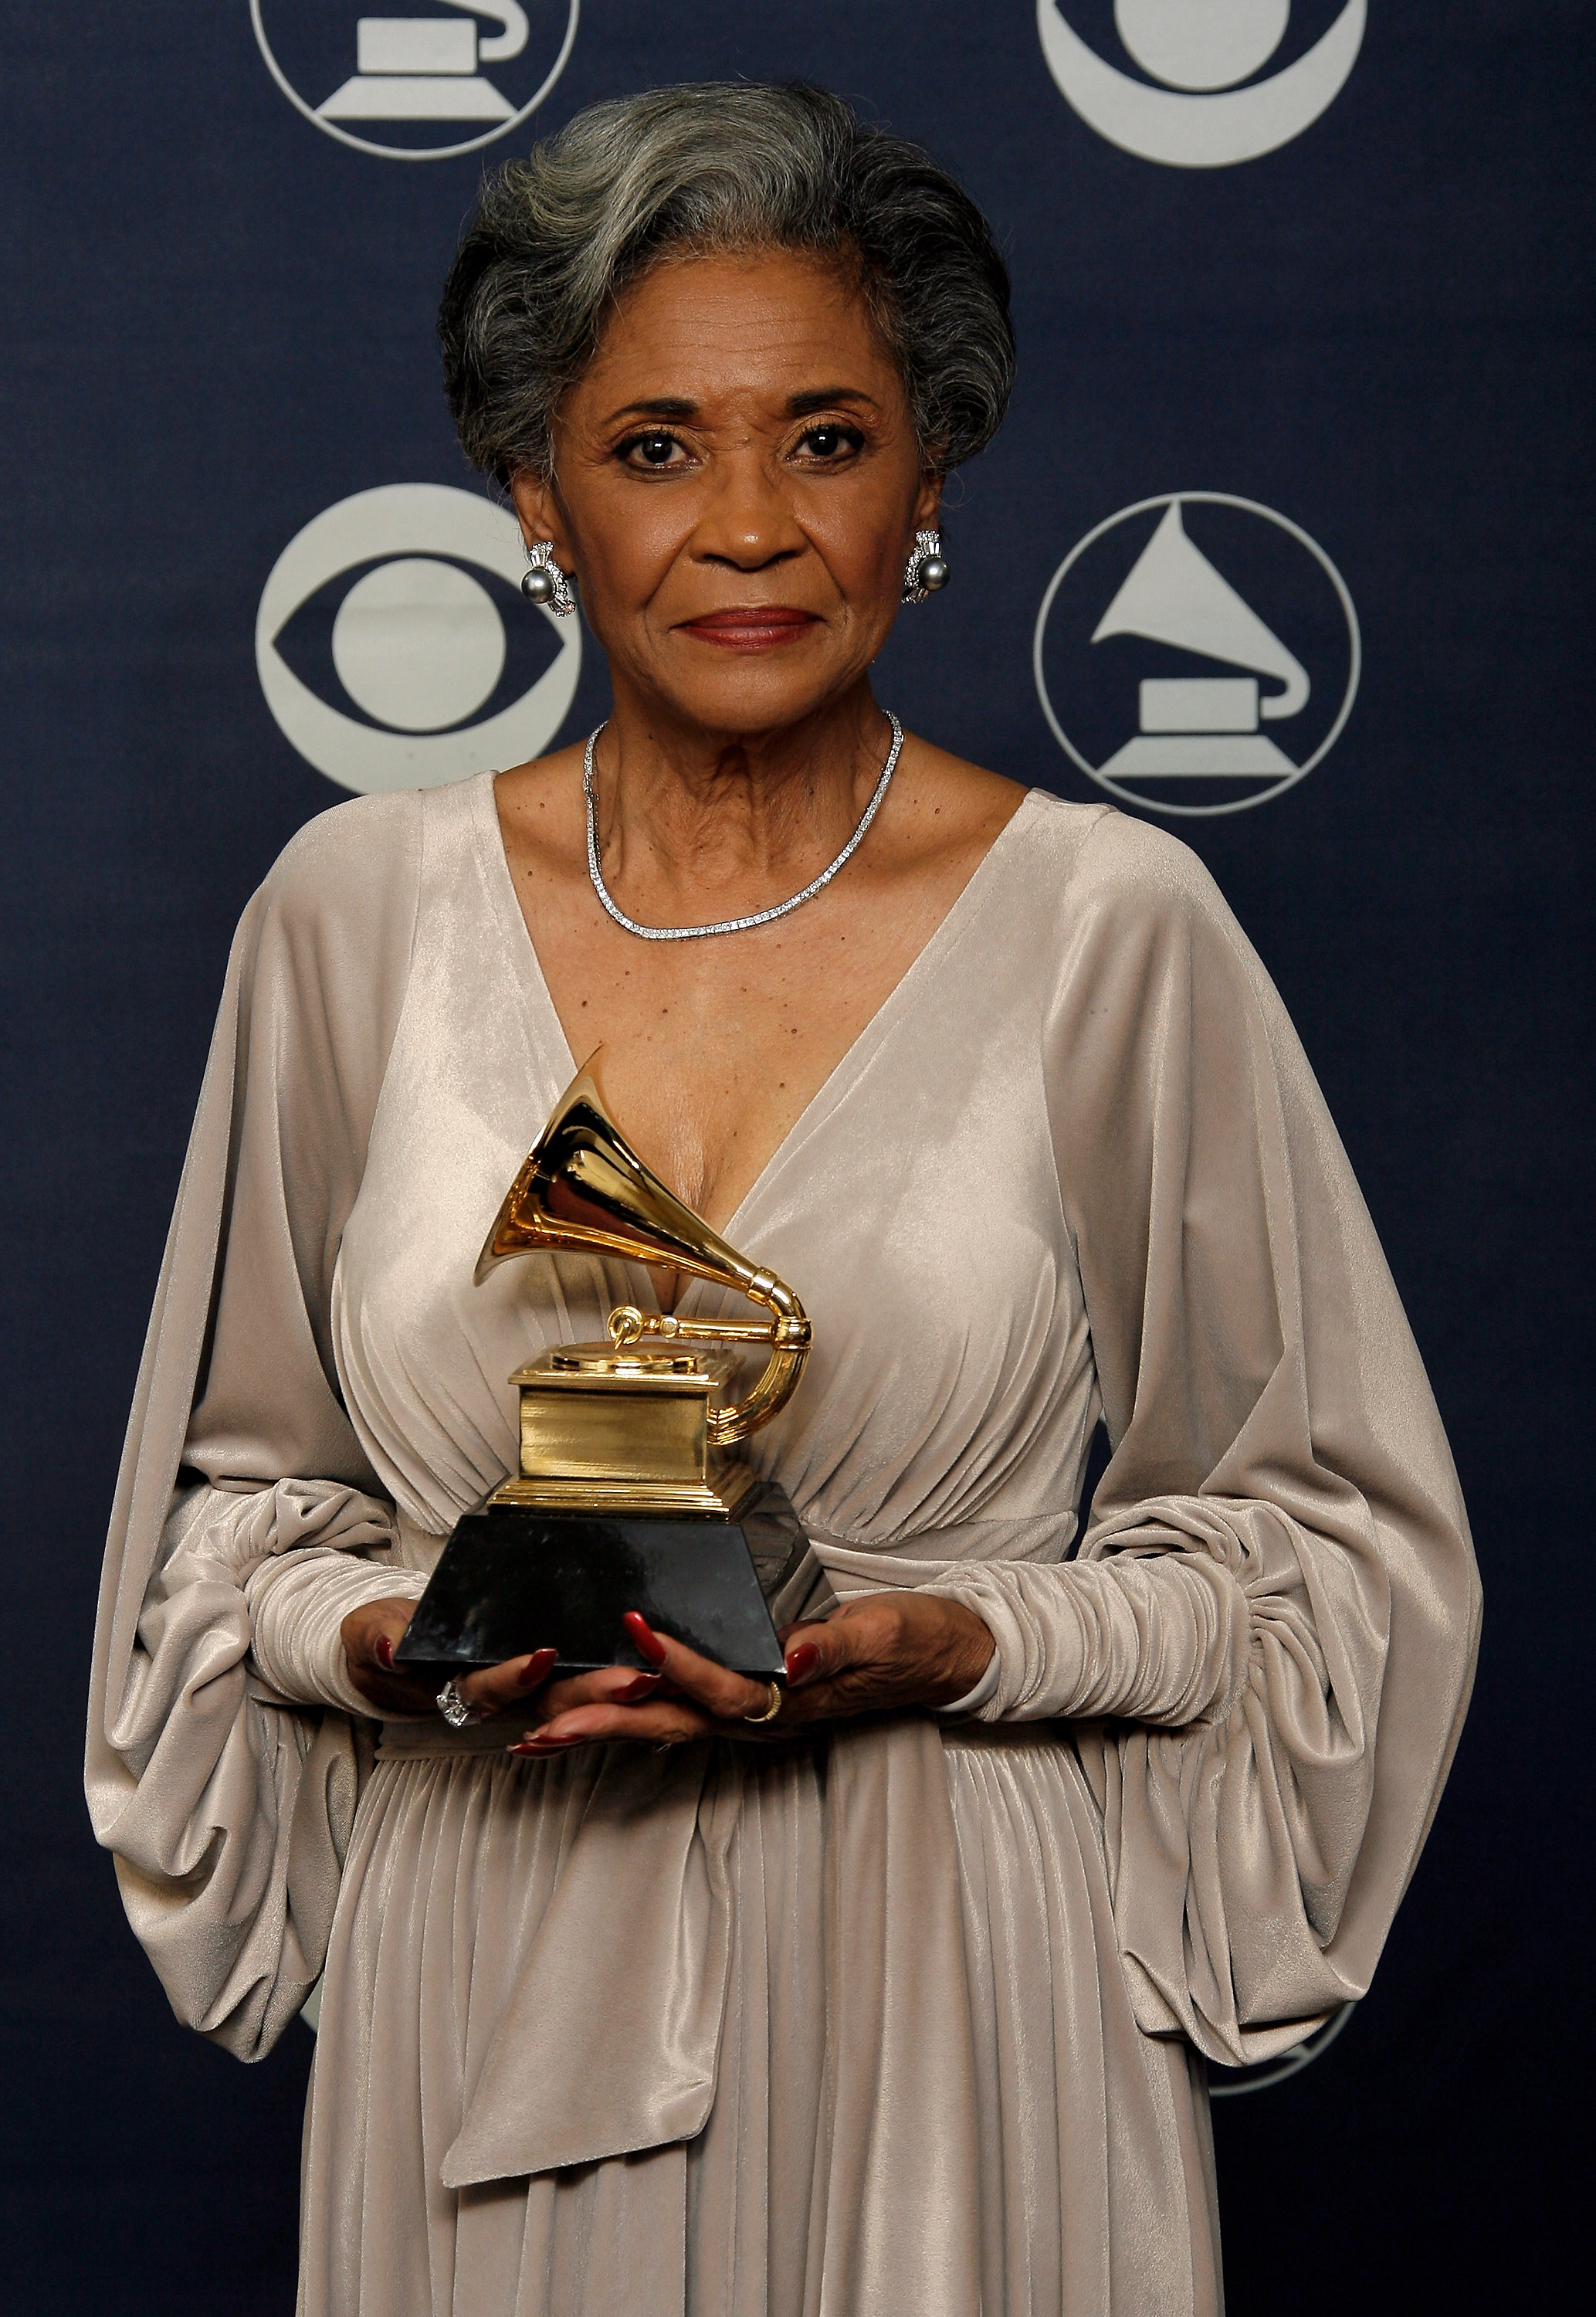 Singer Nancy Wilson poses with her Grammy for Best Jazz Vocal Album for 'Turned To Blue' in the press room at the 49th Annual Grammy Awards at the Staples Center on February 11, 2007 in Los Angeles, California.